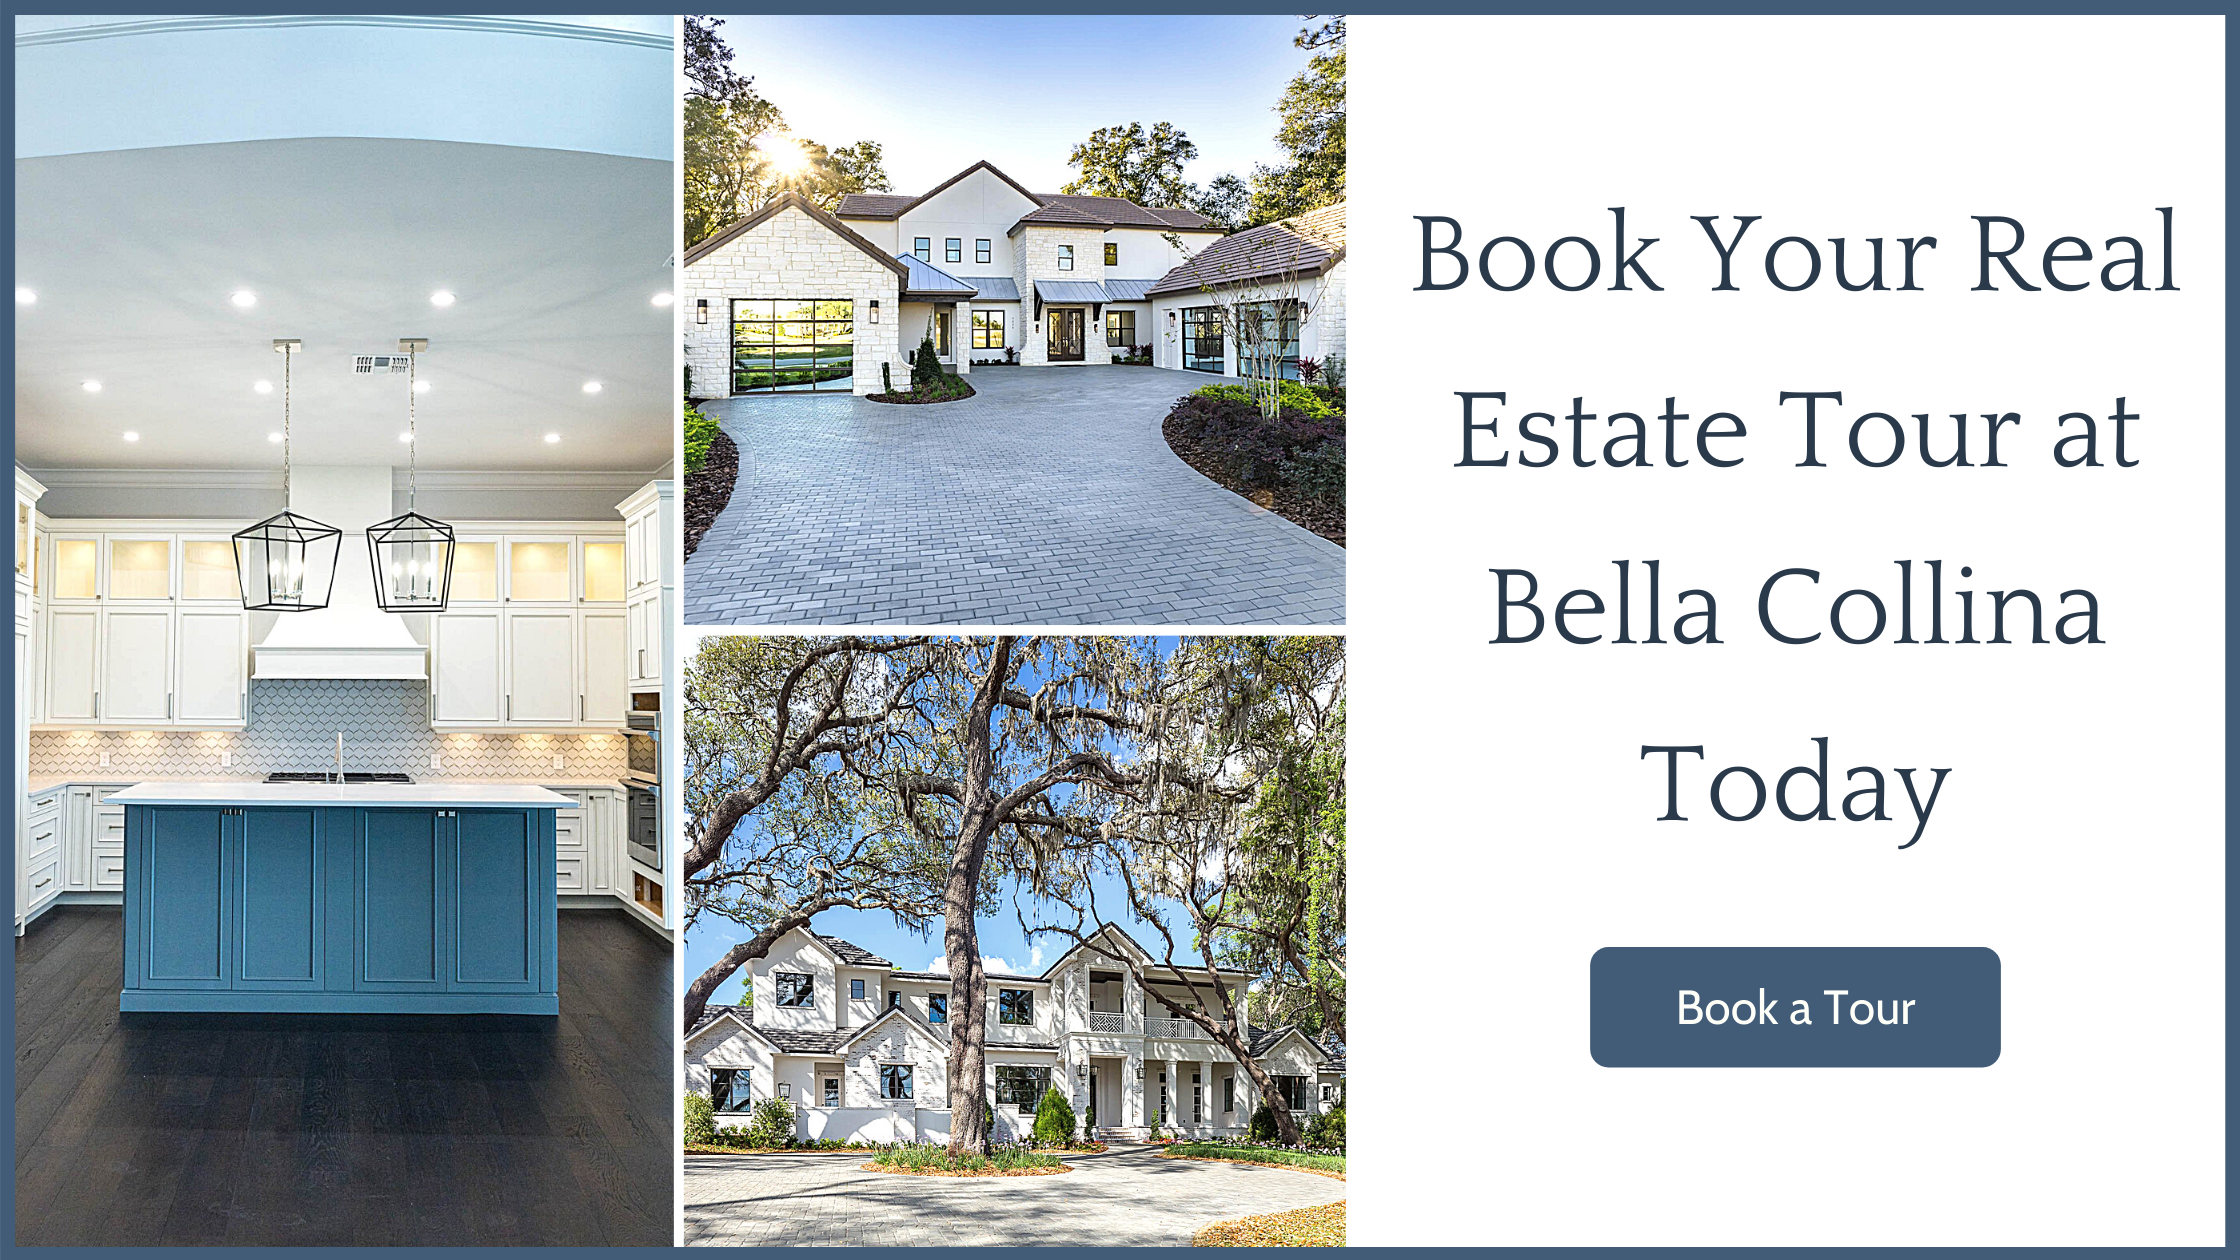 Book Your Real Estate Tour at Bella Collina Today